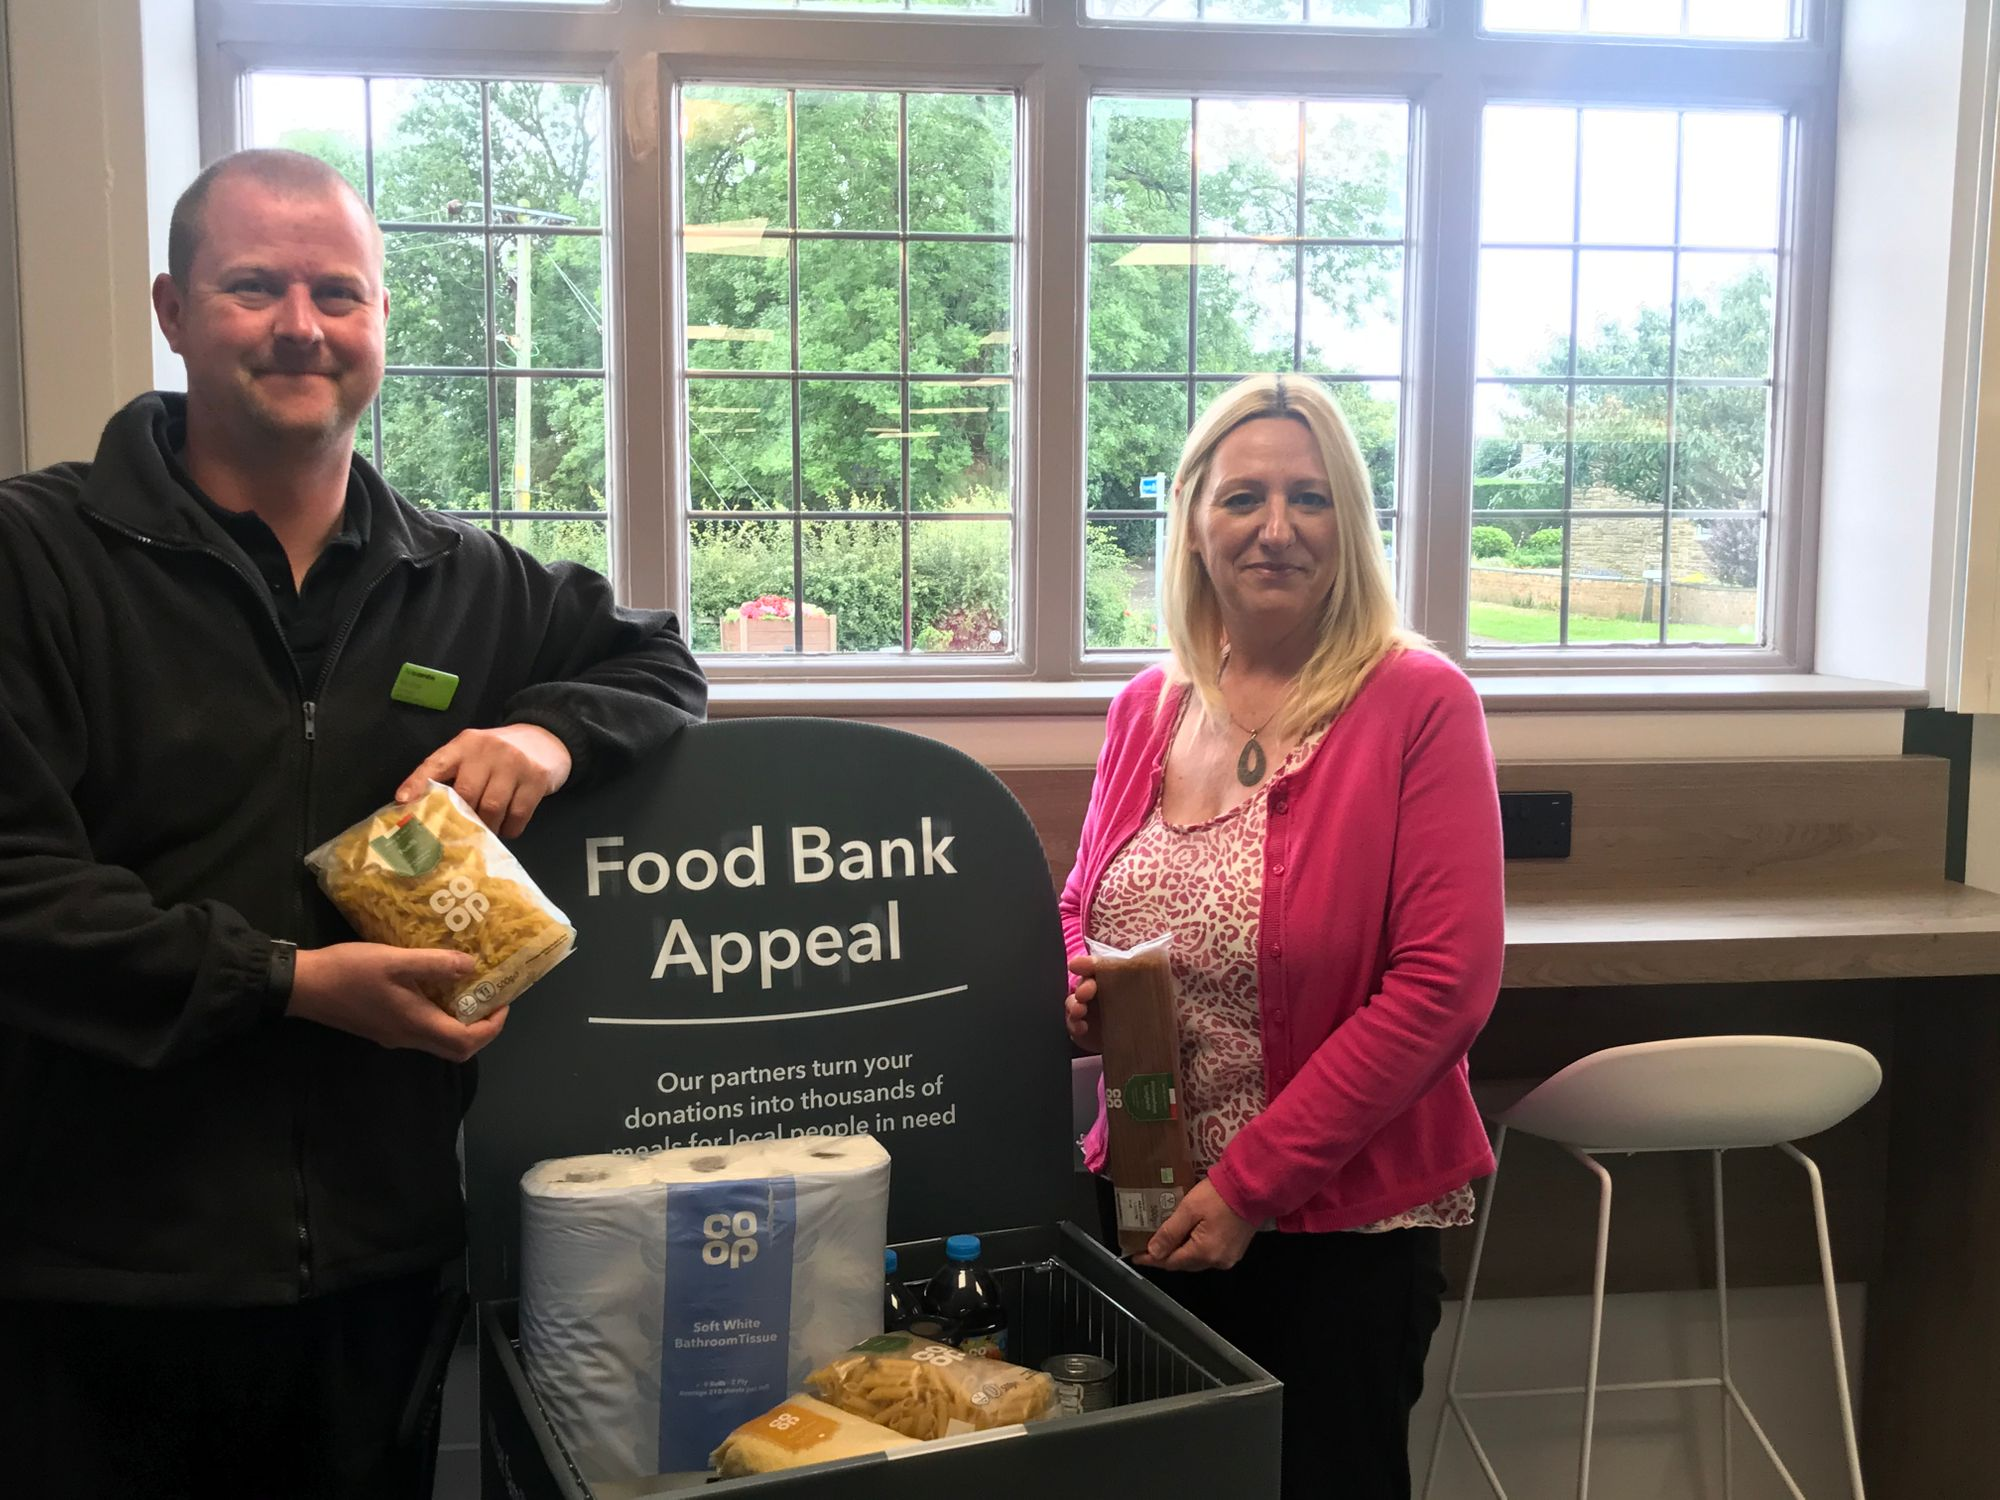 Food Bank collection in Barnby Dun